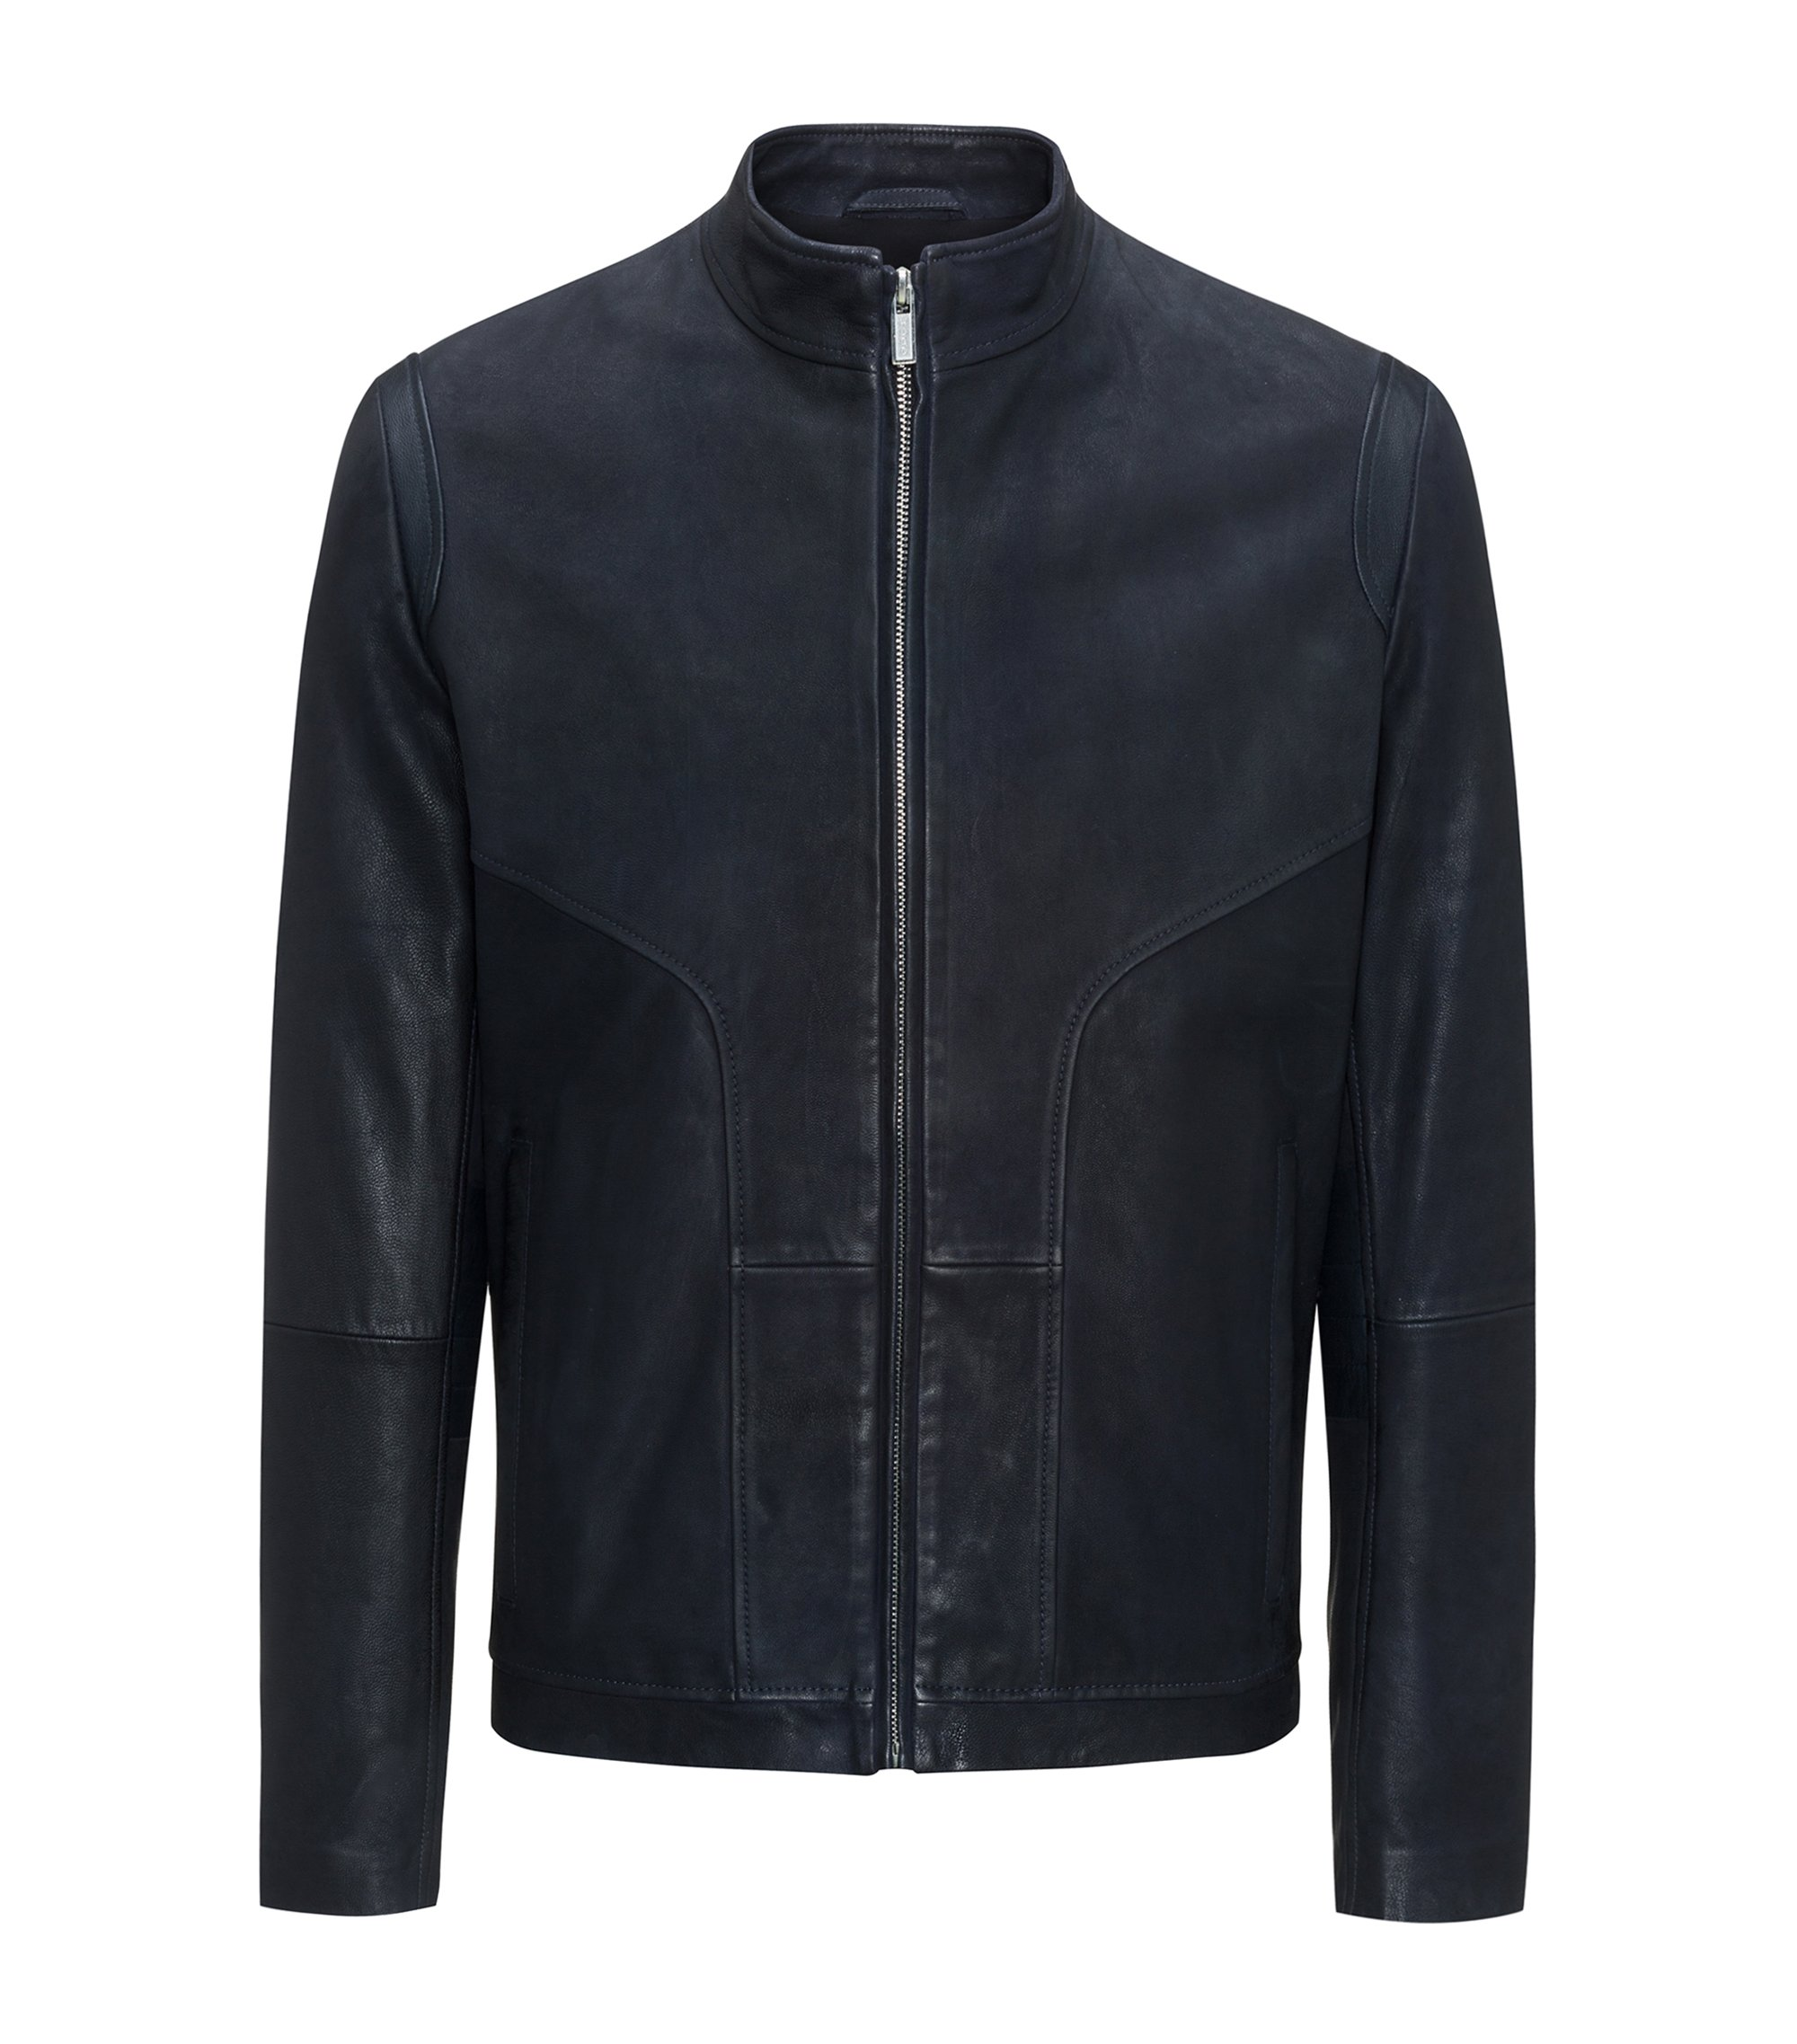 Giubbotto biker slim fit in pelle, Blu scuro